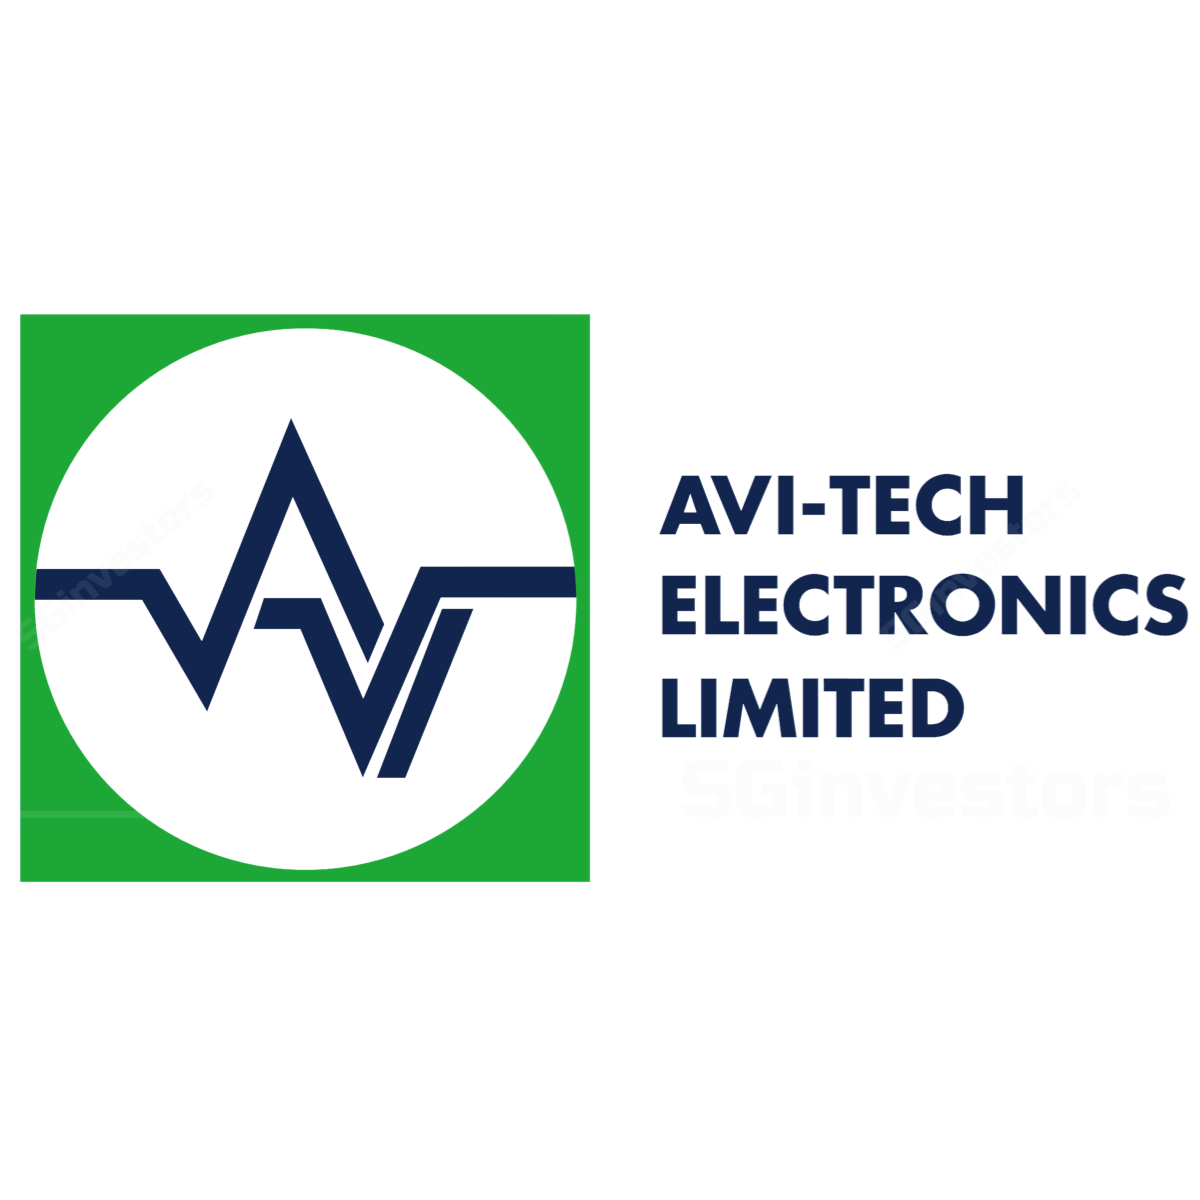 Avi-Tech Electronics - RHB Invest 2017-11-14: Kicking Off FY18 With A Bang